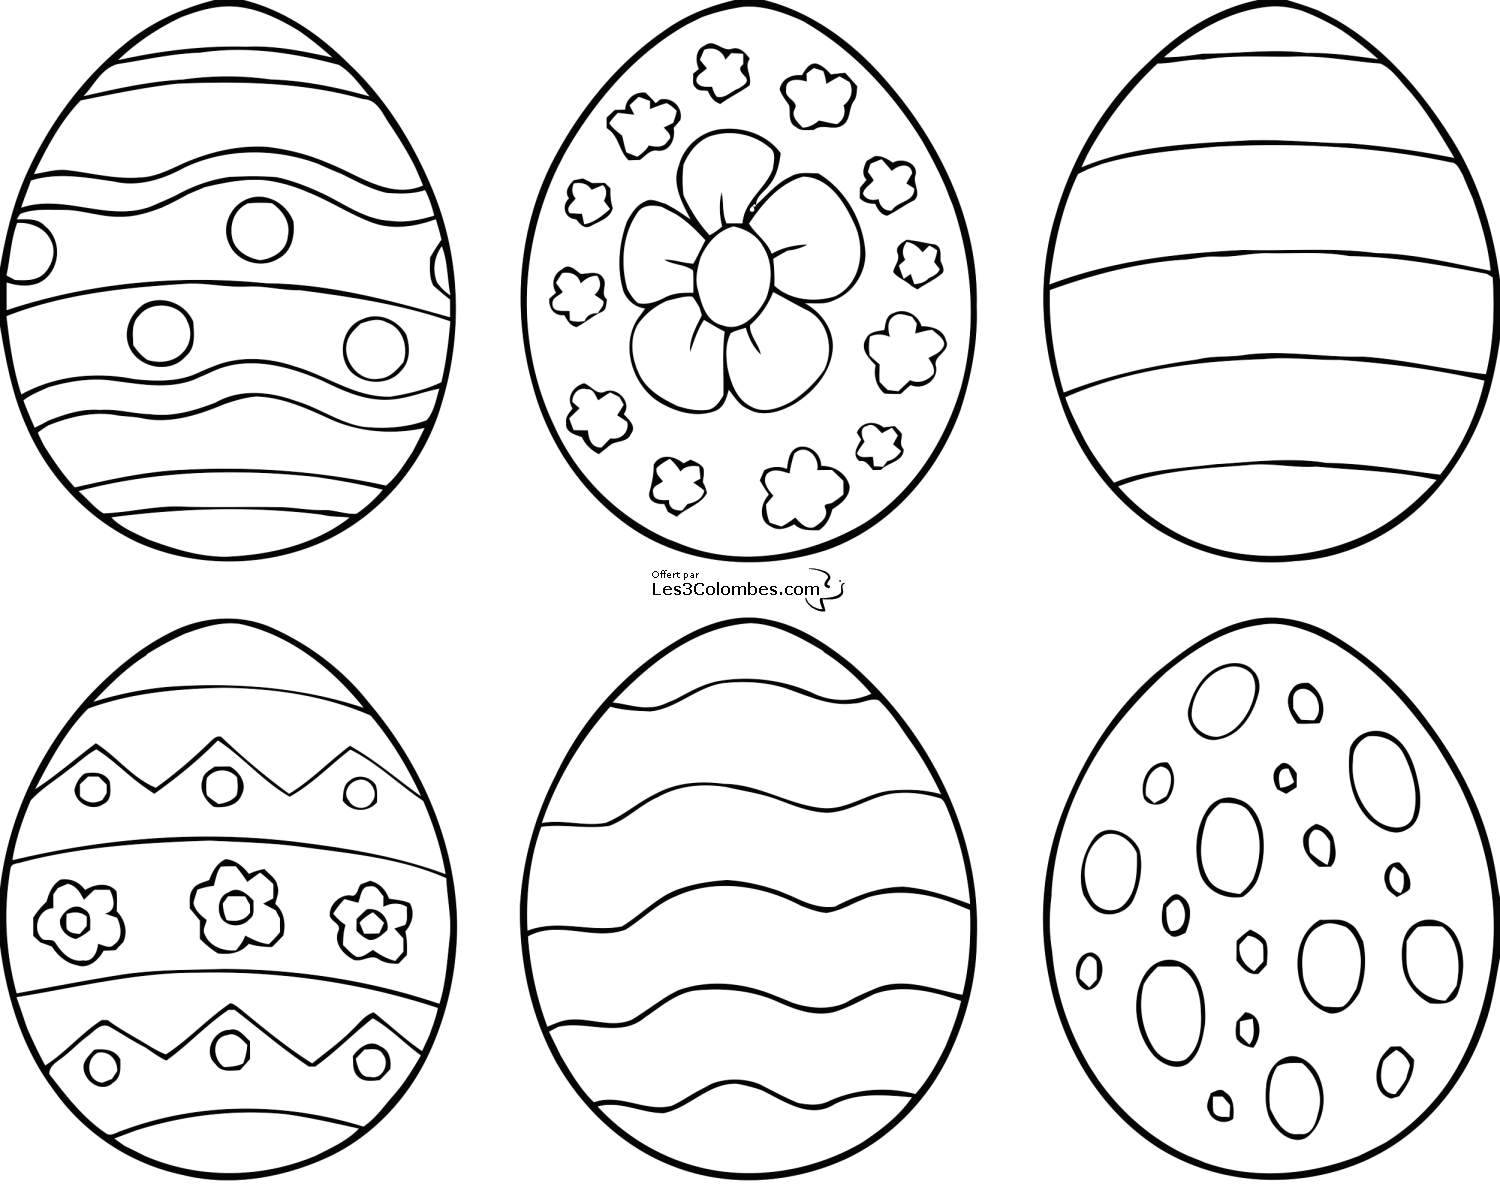 Coloriages de 6 modele d oeuf de paques a imprimer coloriage easter crafts easter colouring - Coloriage de paque ...